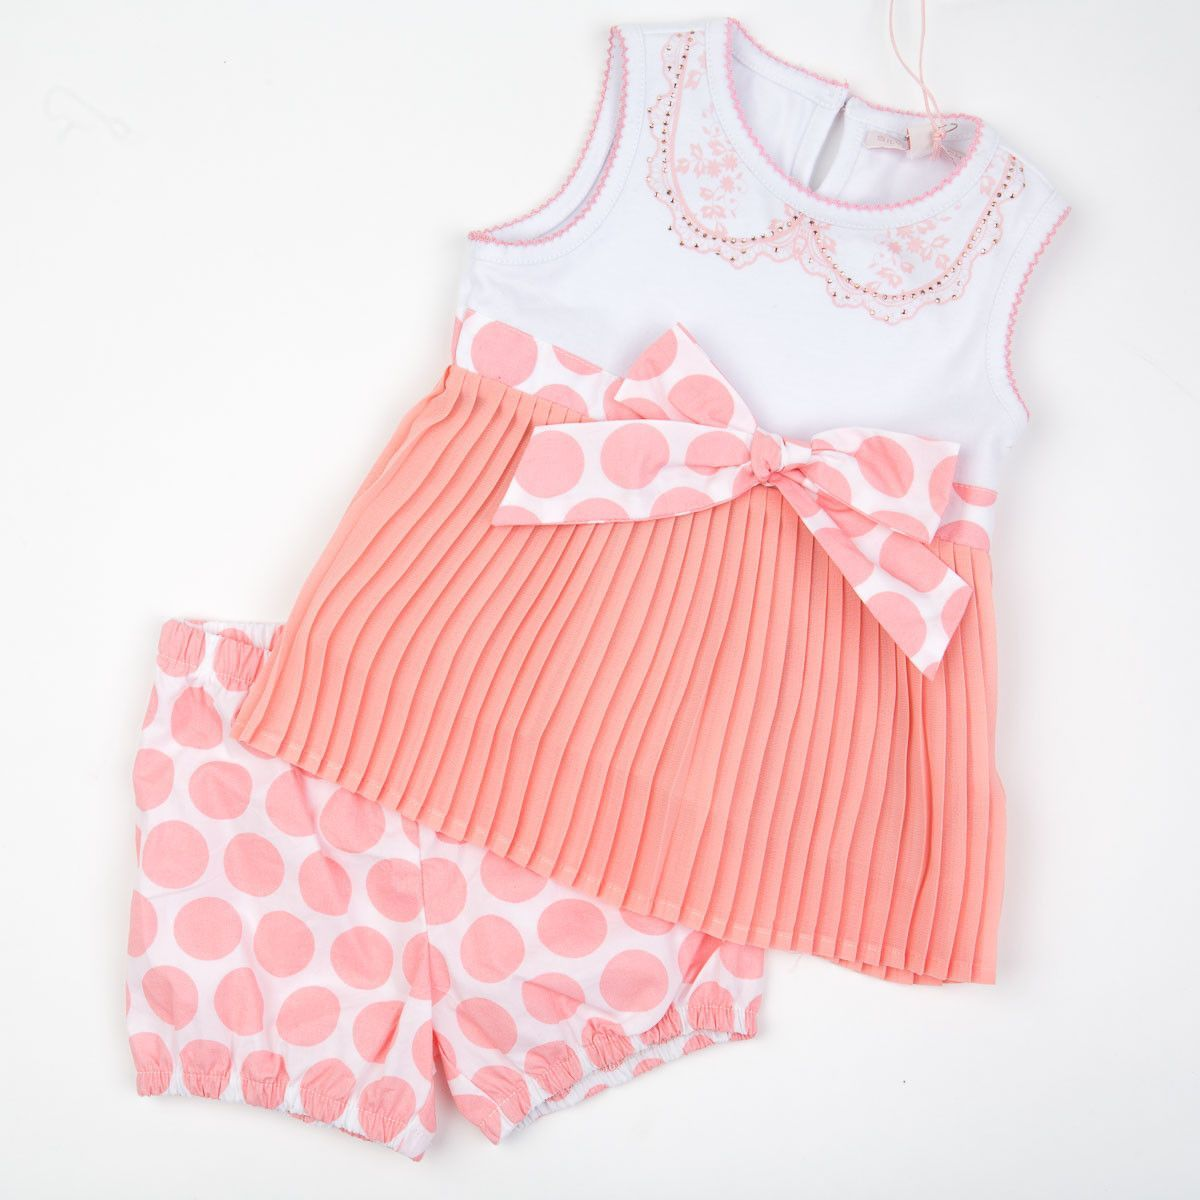 finest selection 8f286 1c900 Silvian Heach Bebe - Baby Girl Dress With Diaper Cover ...